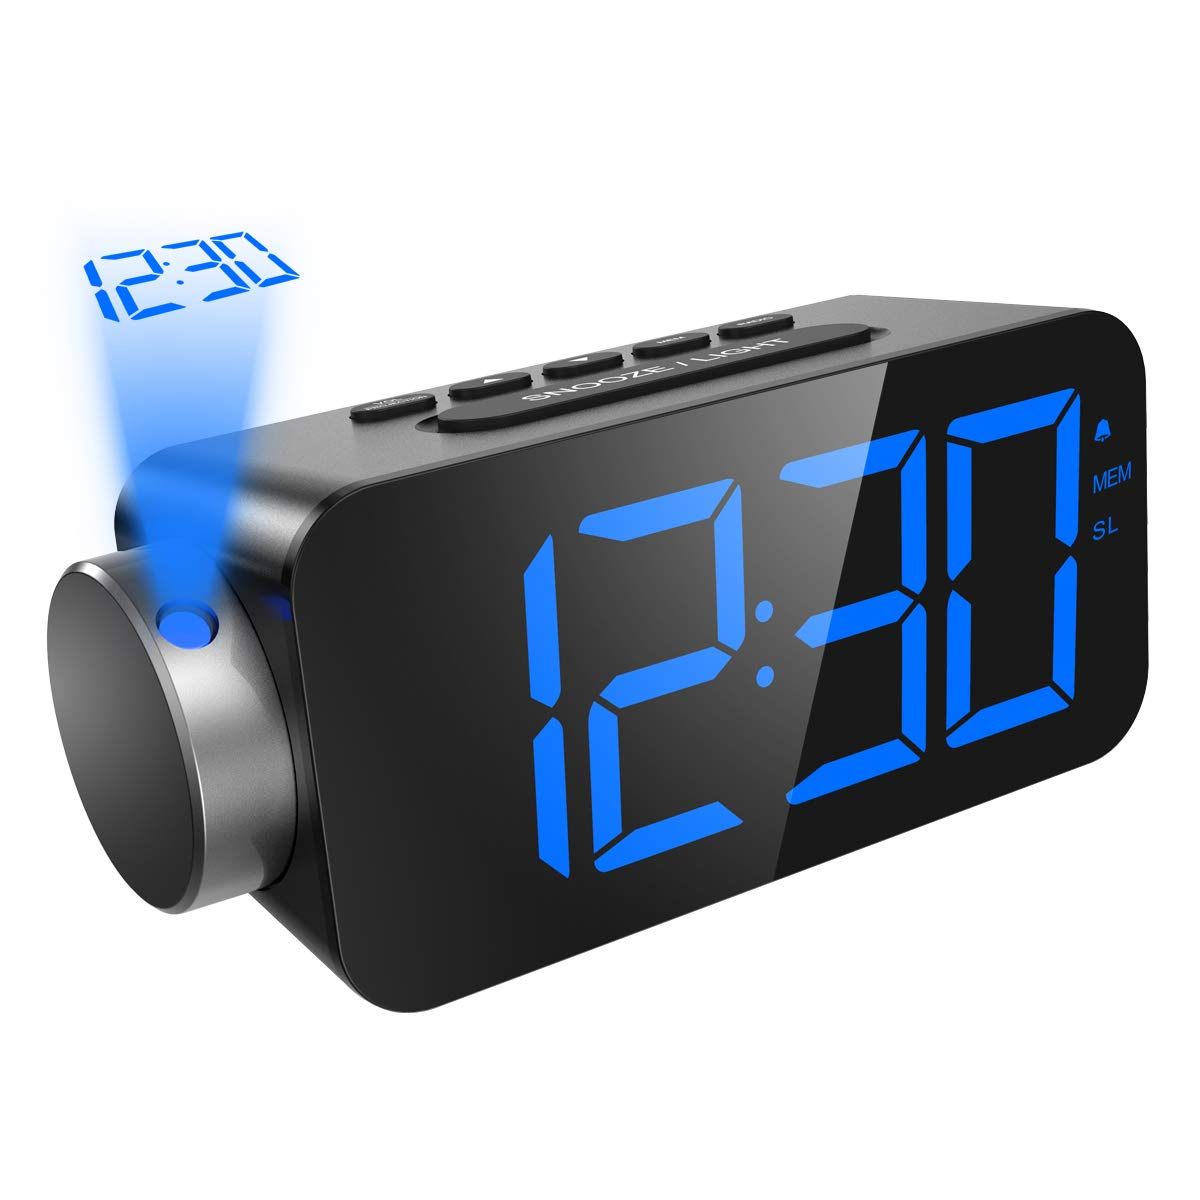 ORIA Projection Clock, FM Radio Alarm Clock, 6.5'' LED Display with Dimmer, Alarm with USB Charging Port, 12/24 Hours, 3 Level of Brightness, 180° Adjustable Angle, Backup Battery for Power Failure